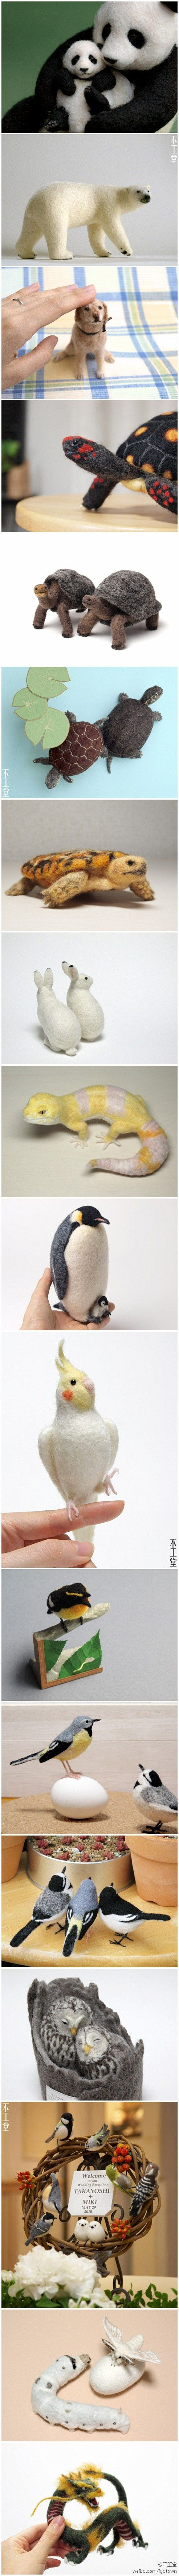 Needle felted sculptures by Japanese artist Miki Ichiyama